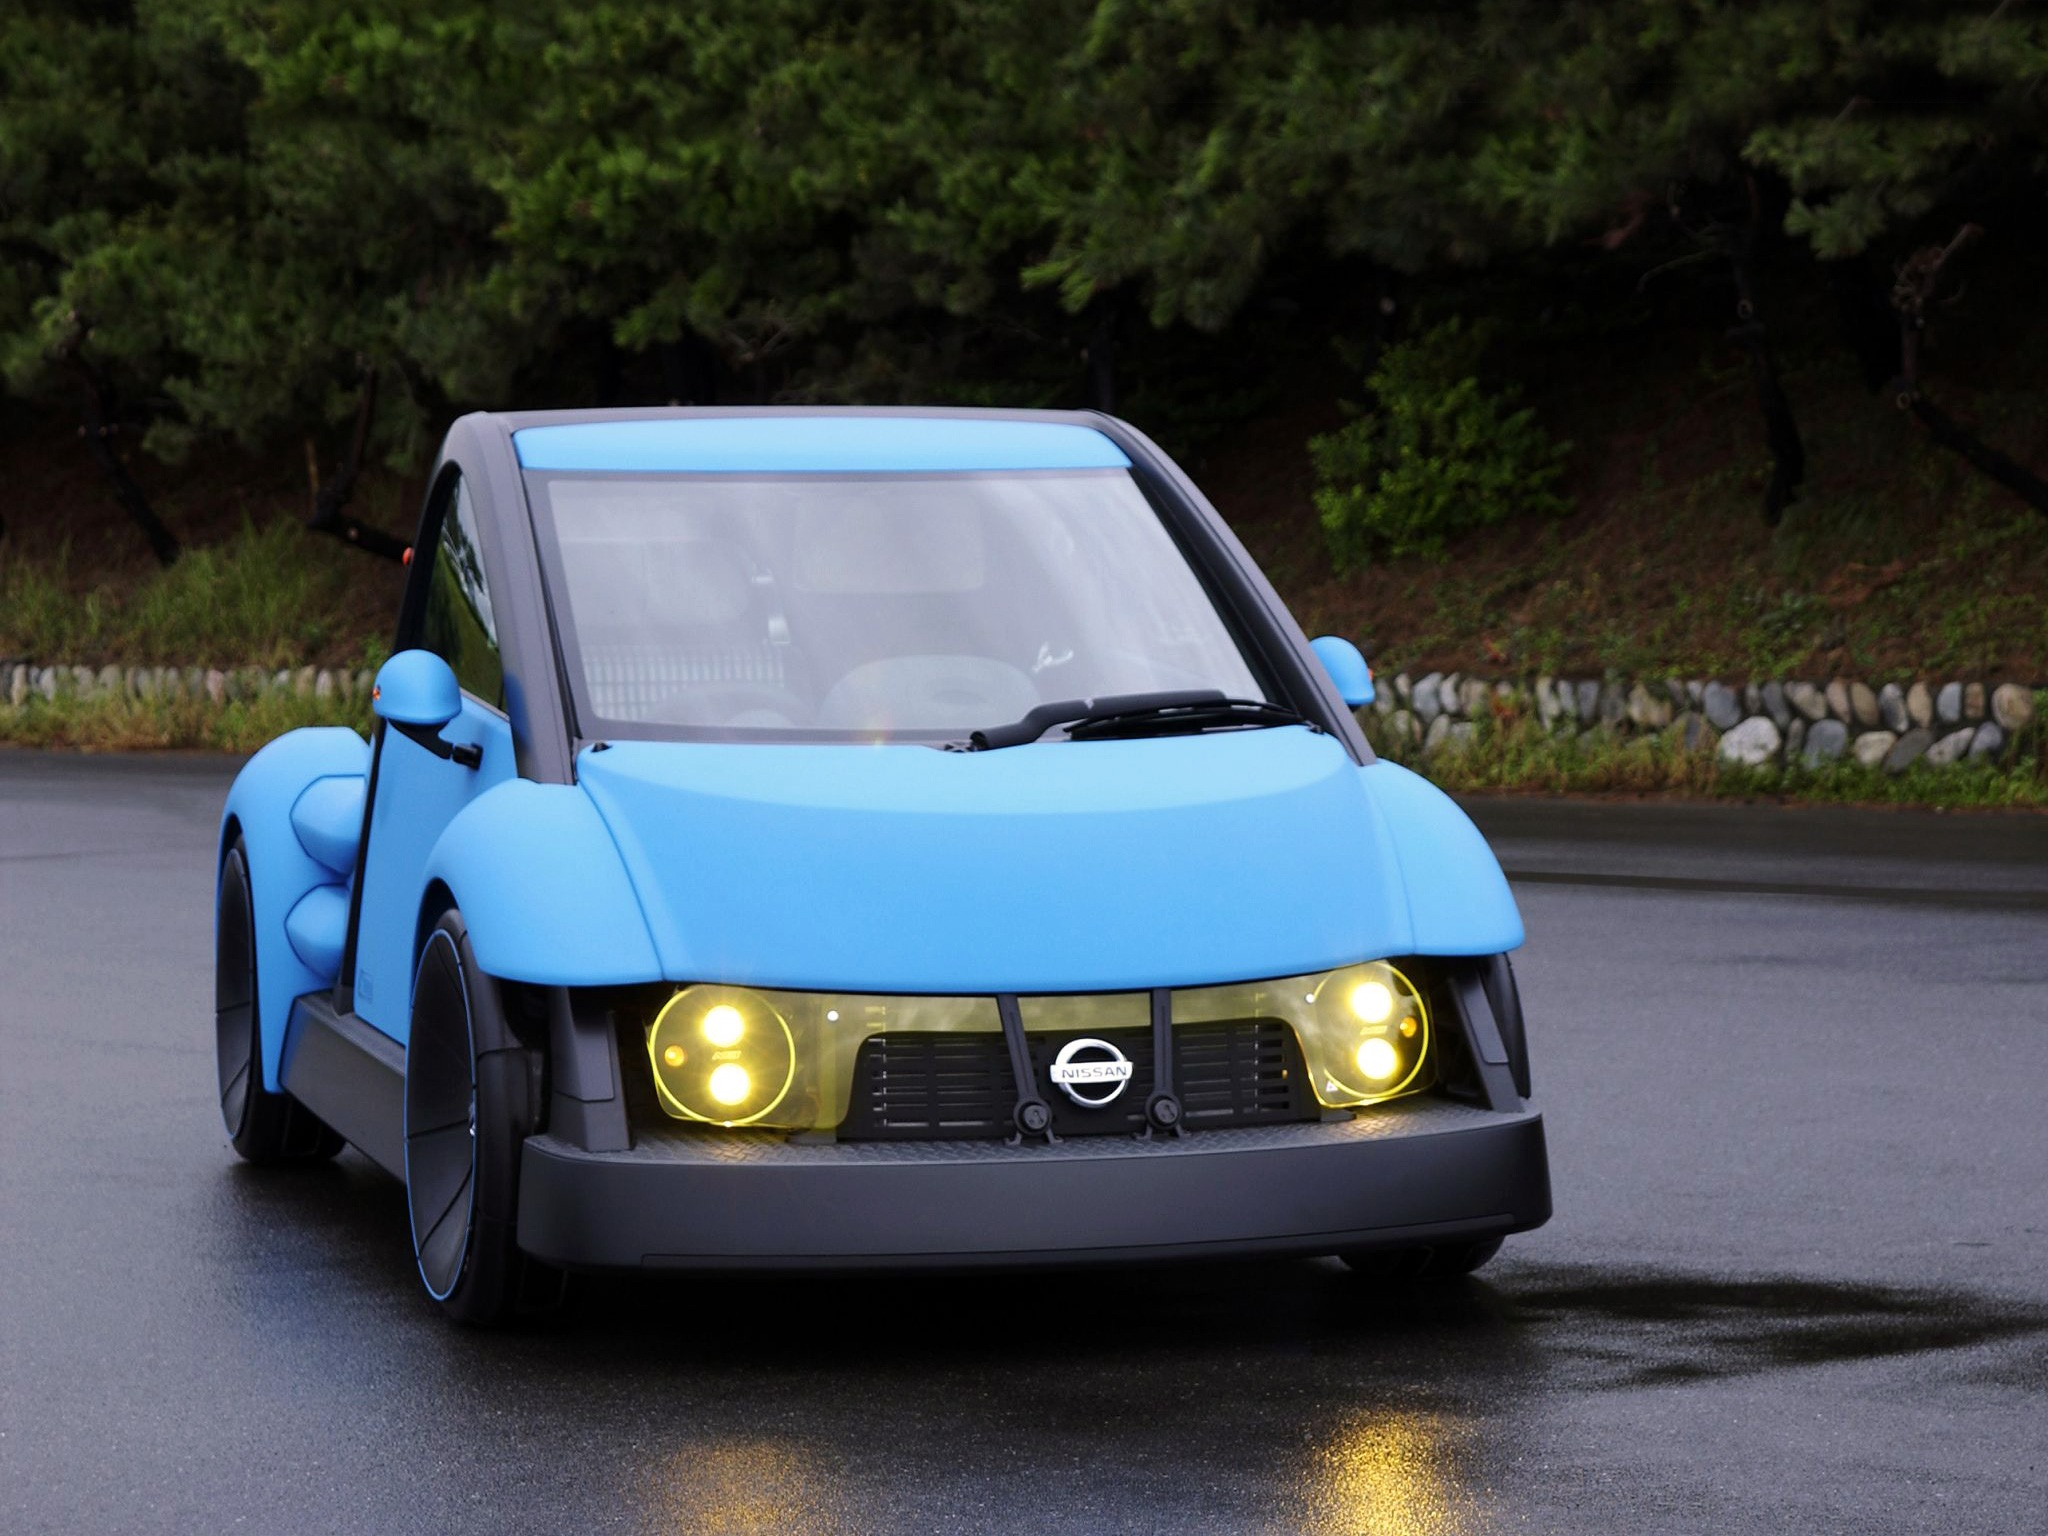 Nissan Nails Concept 2001 Old Concept Cars